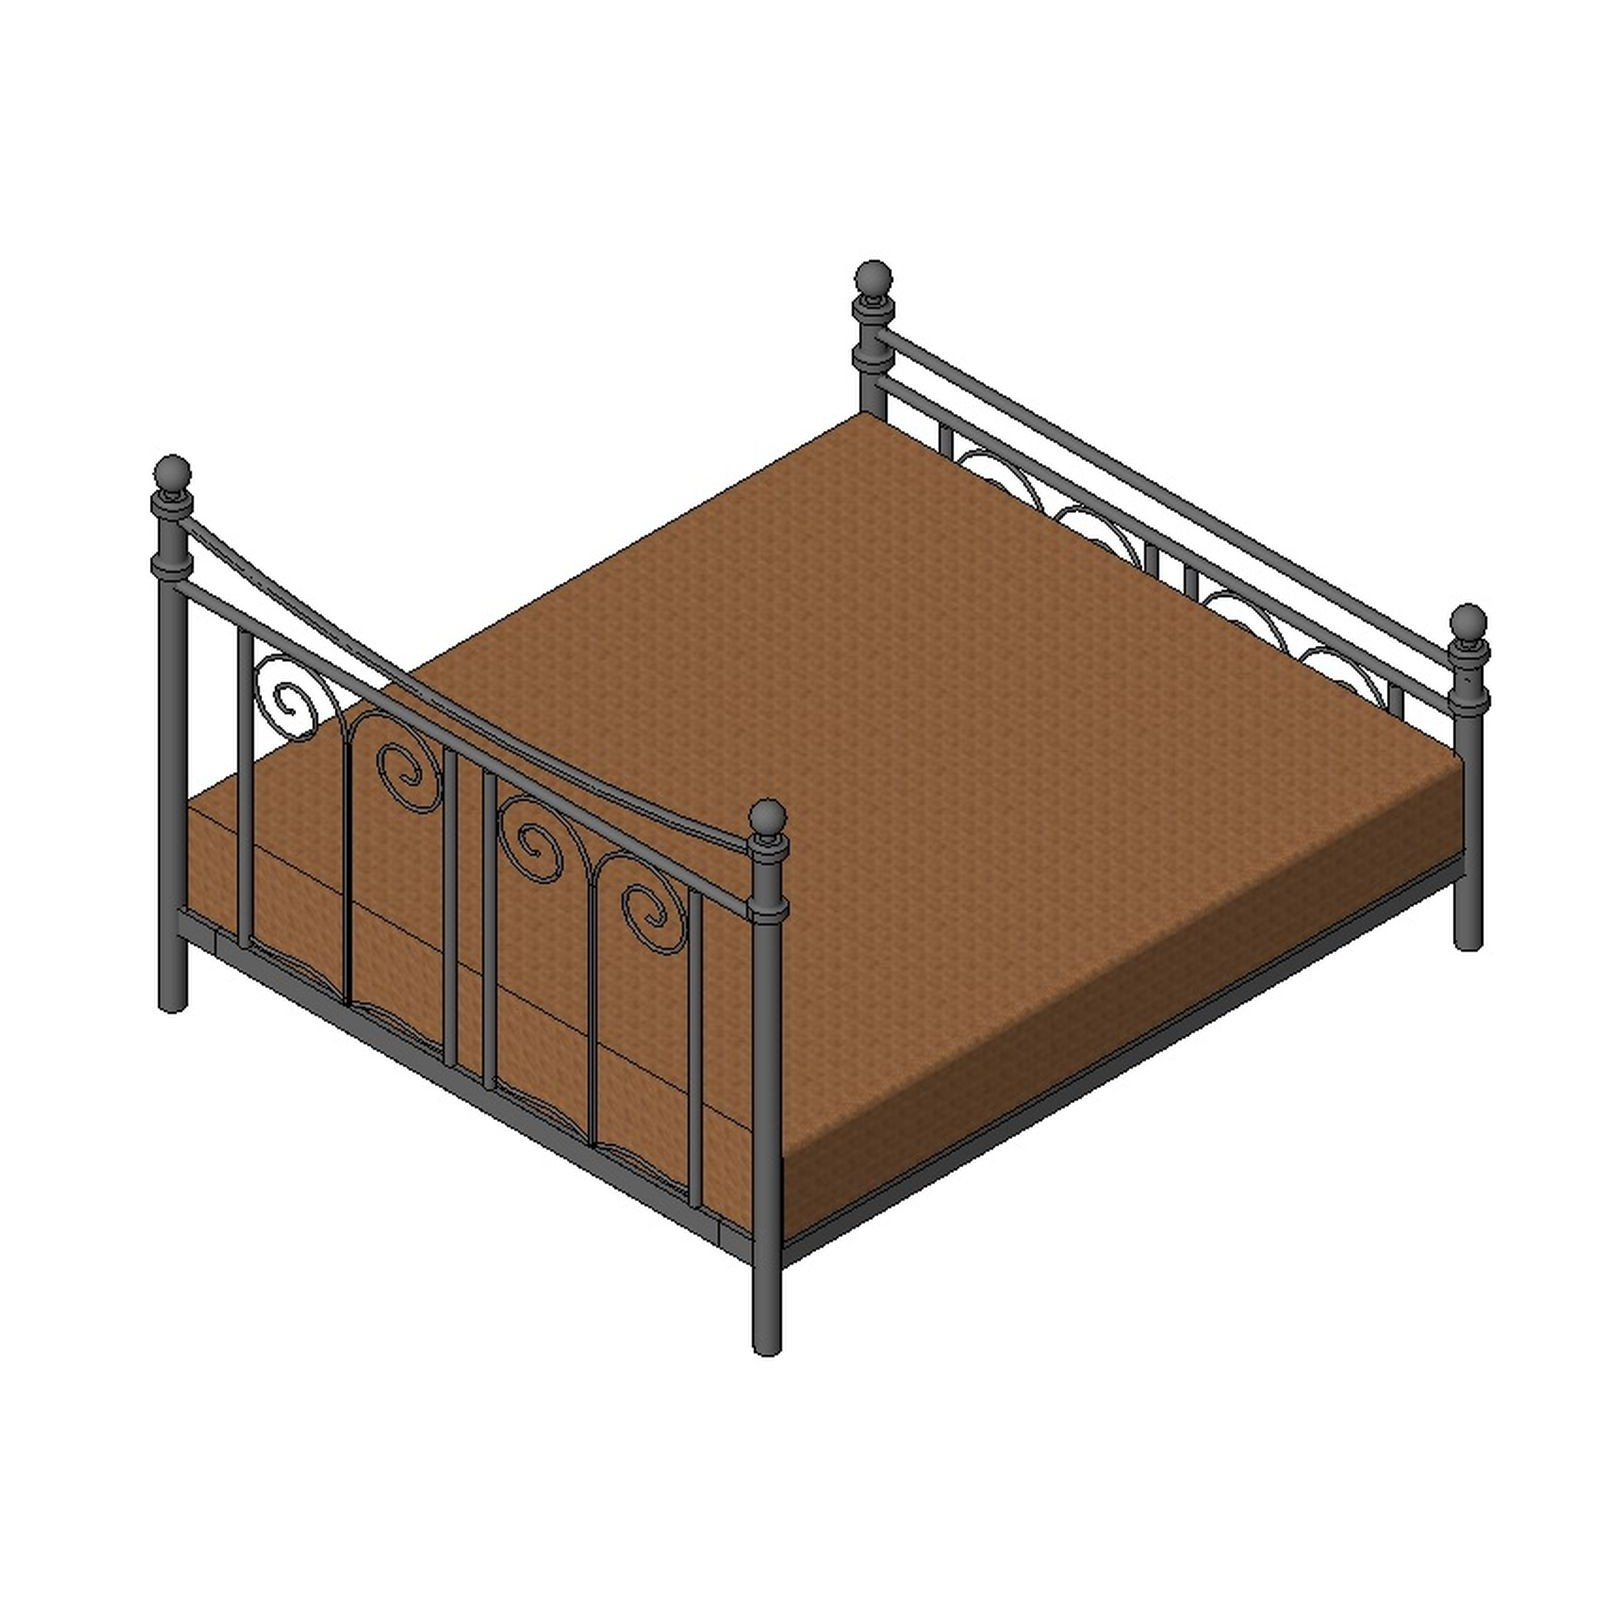 King Bed Type 3 Design Content: types of king beds